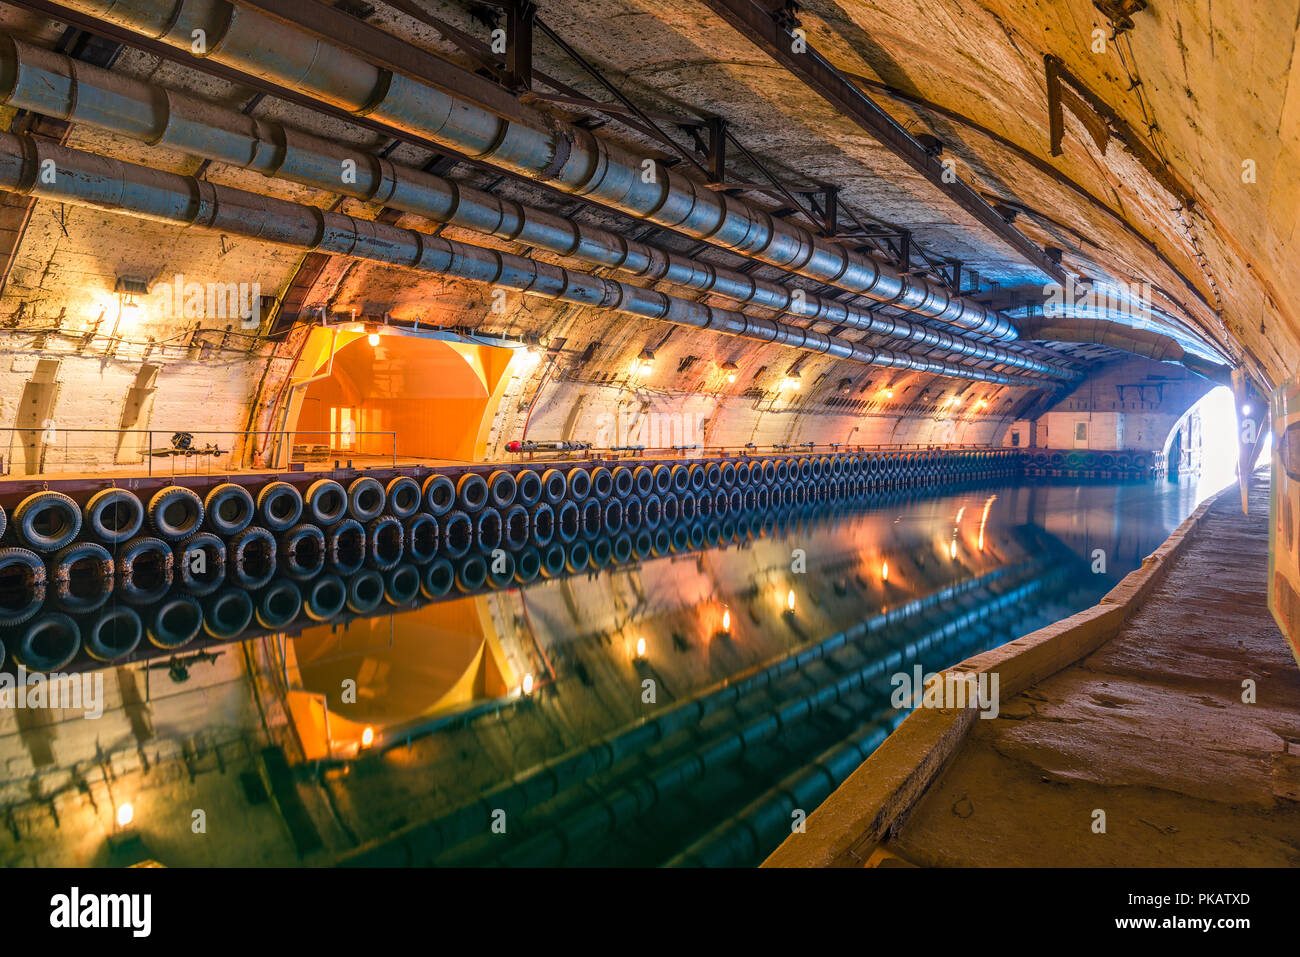 Underground channel for the repair of submarines during the Cold War, Russia, Balaclava - Stock Image